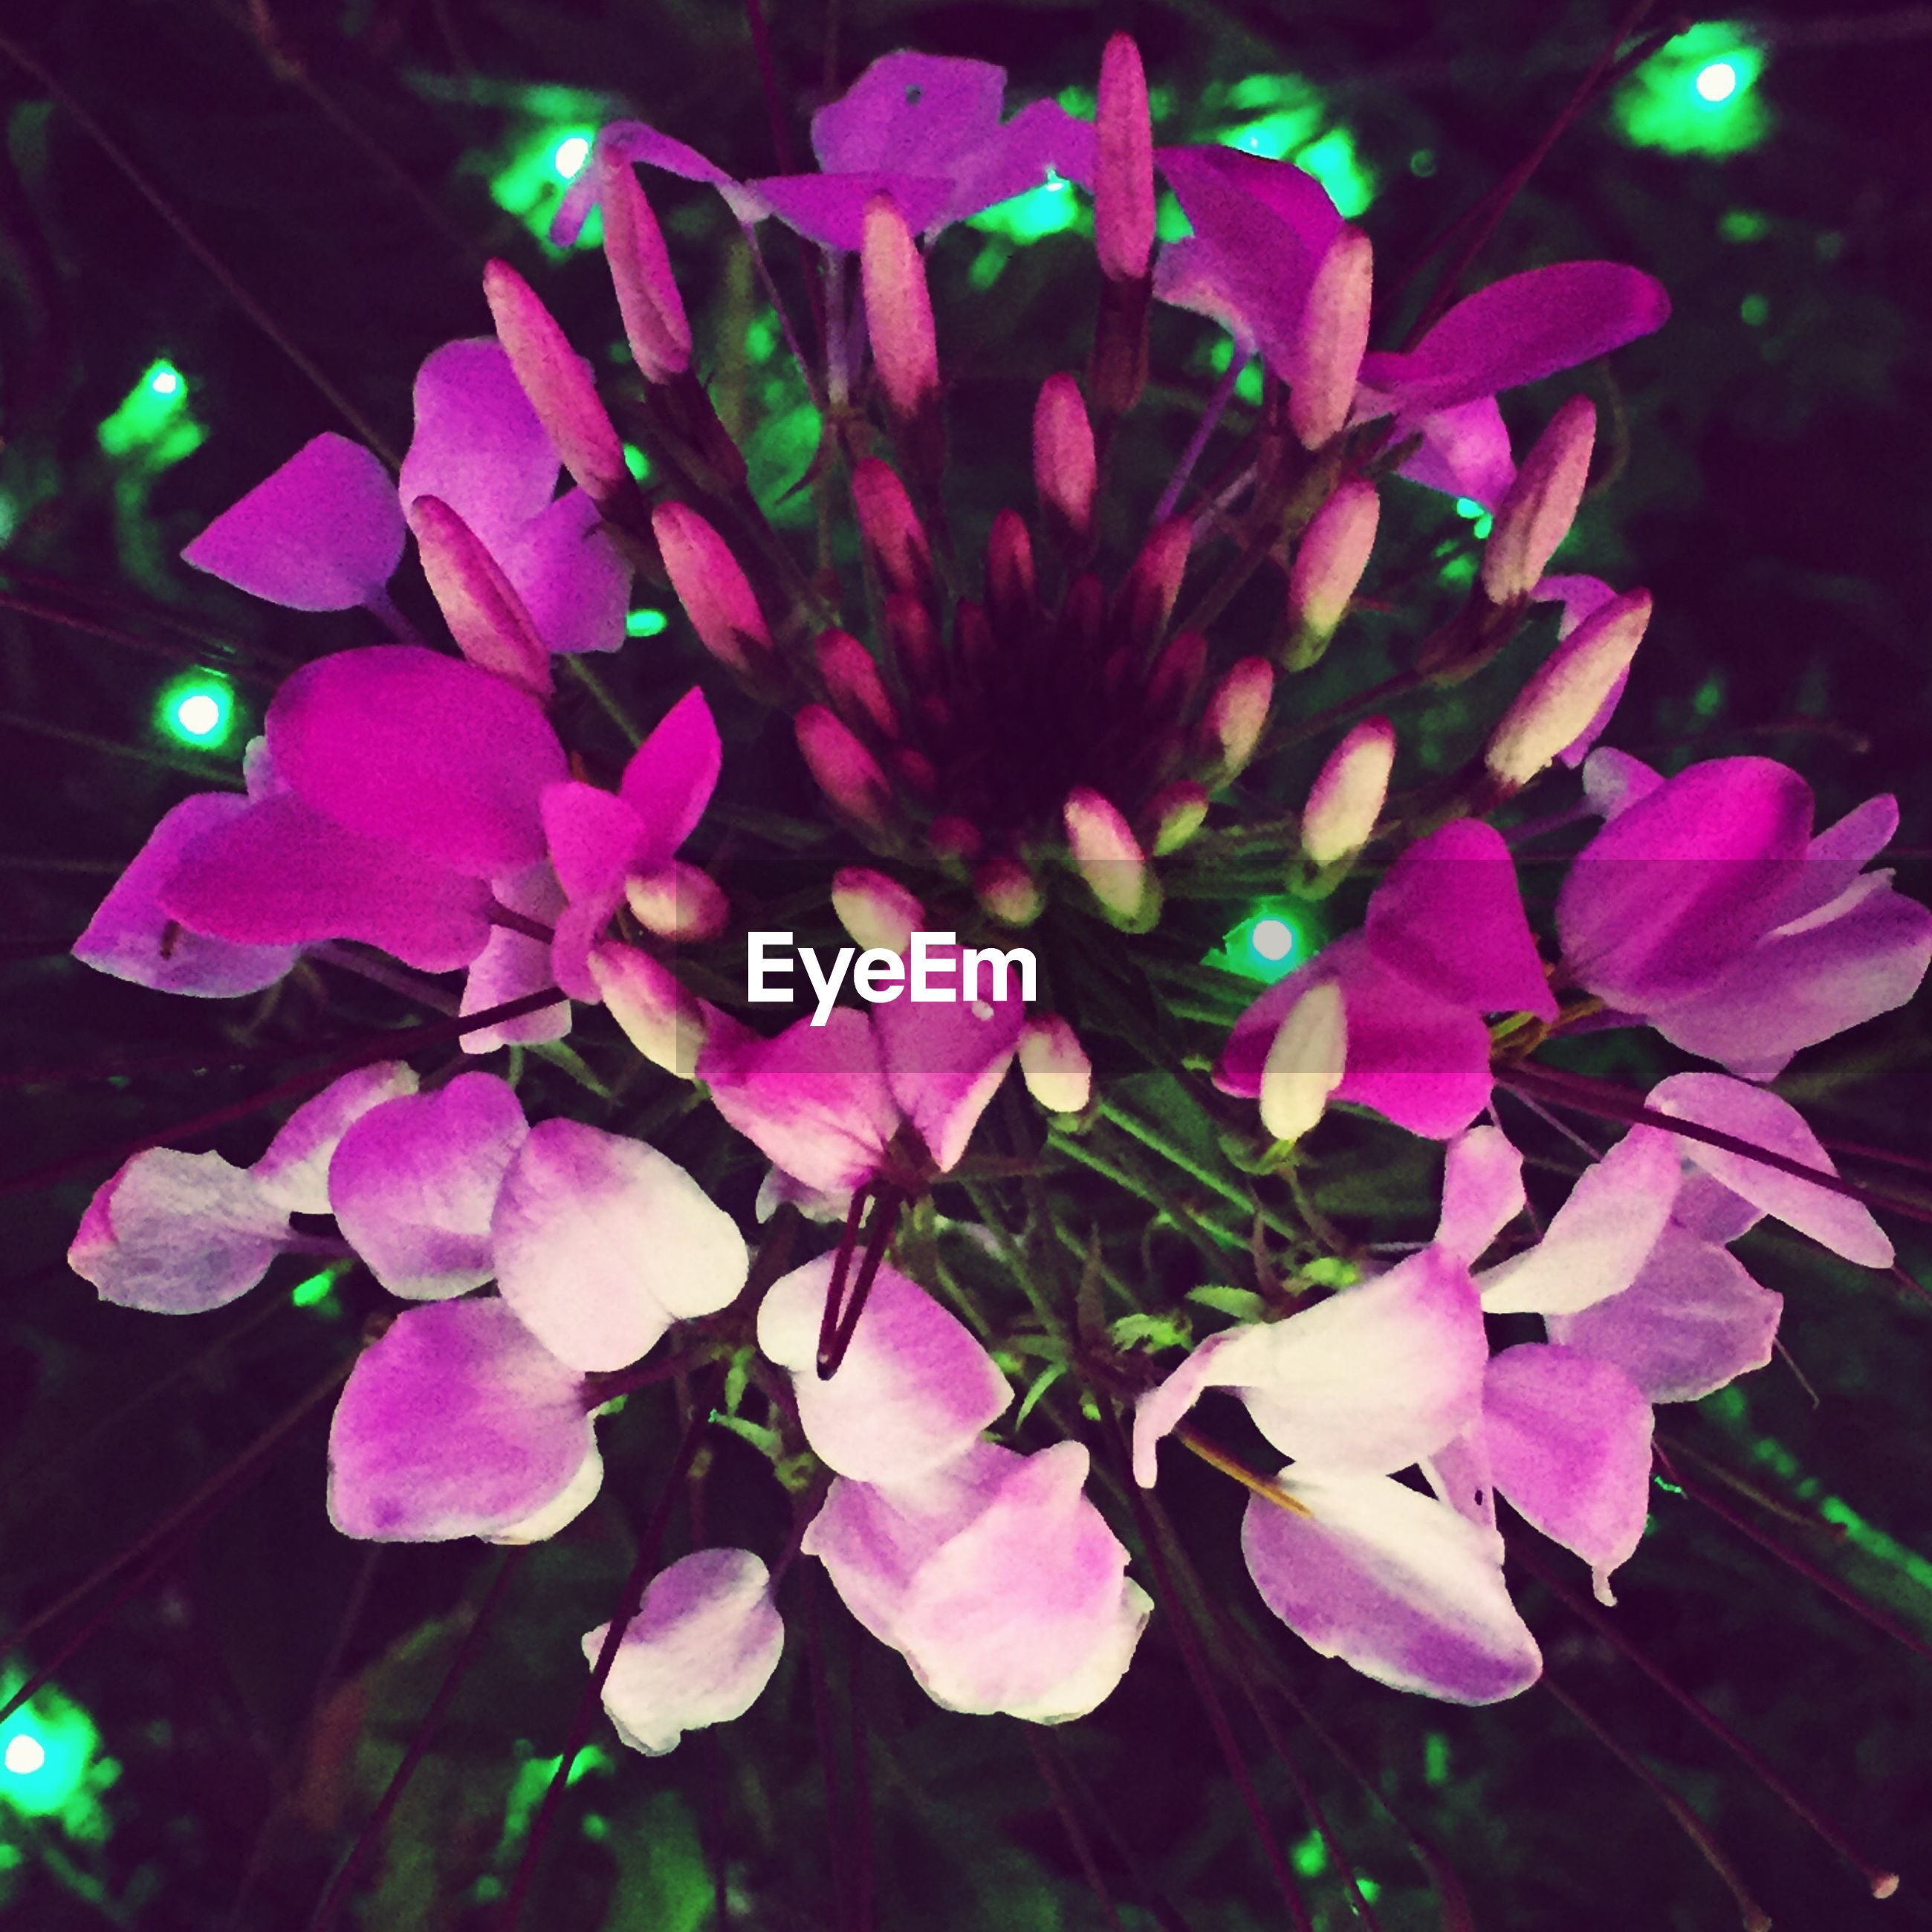 flower, night, freshness, petal, close-up, fragility, pink color, illuminated, growth, indoors, beauty in nature, flower head, nature, plant, focus on foreground, no people, purple, black background, decoration, blooming